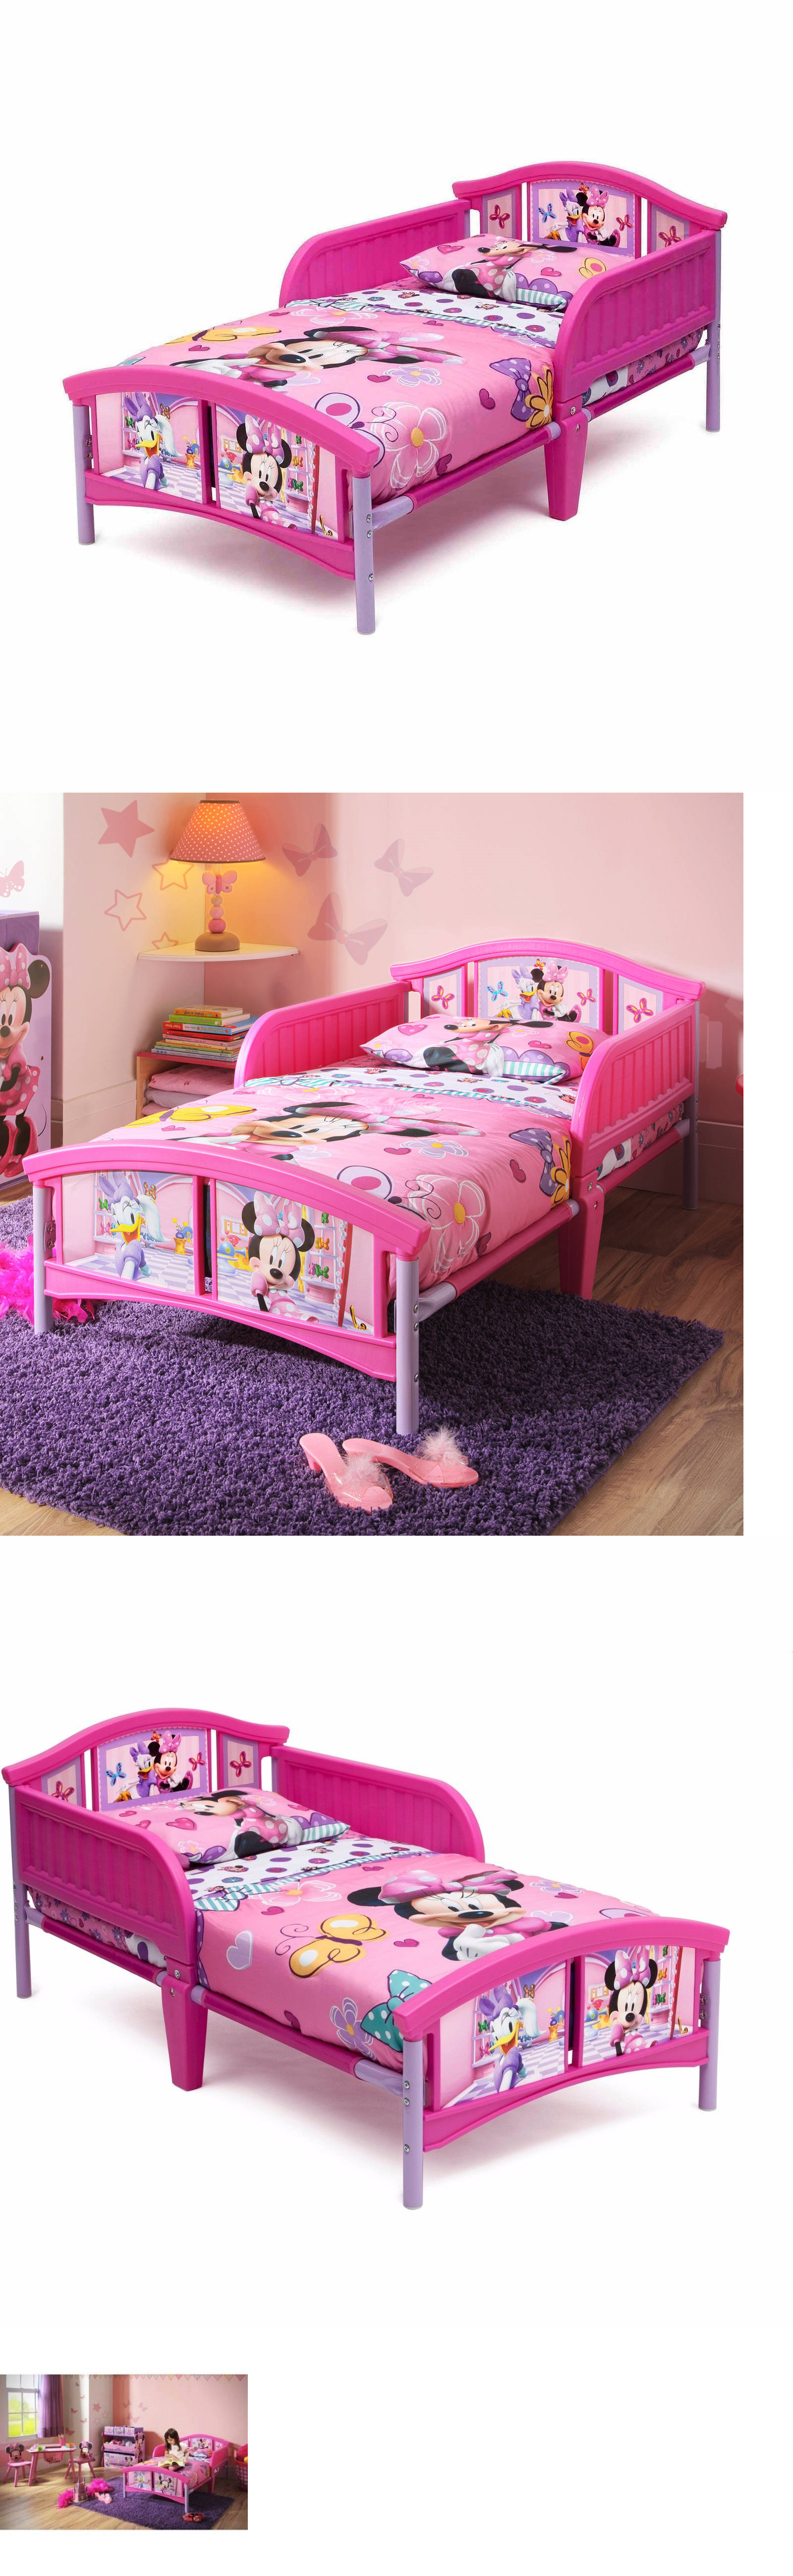 Kids Furniture: Disney Minnie Mouse Plastic Toddler Bed Delta Girls Kids  Furniture *No Tax